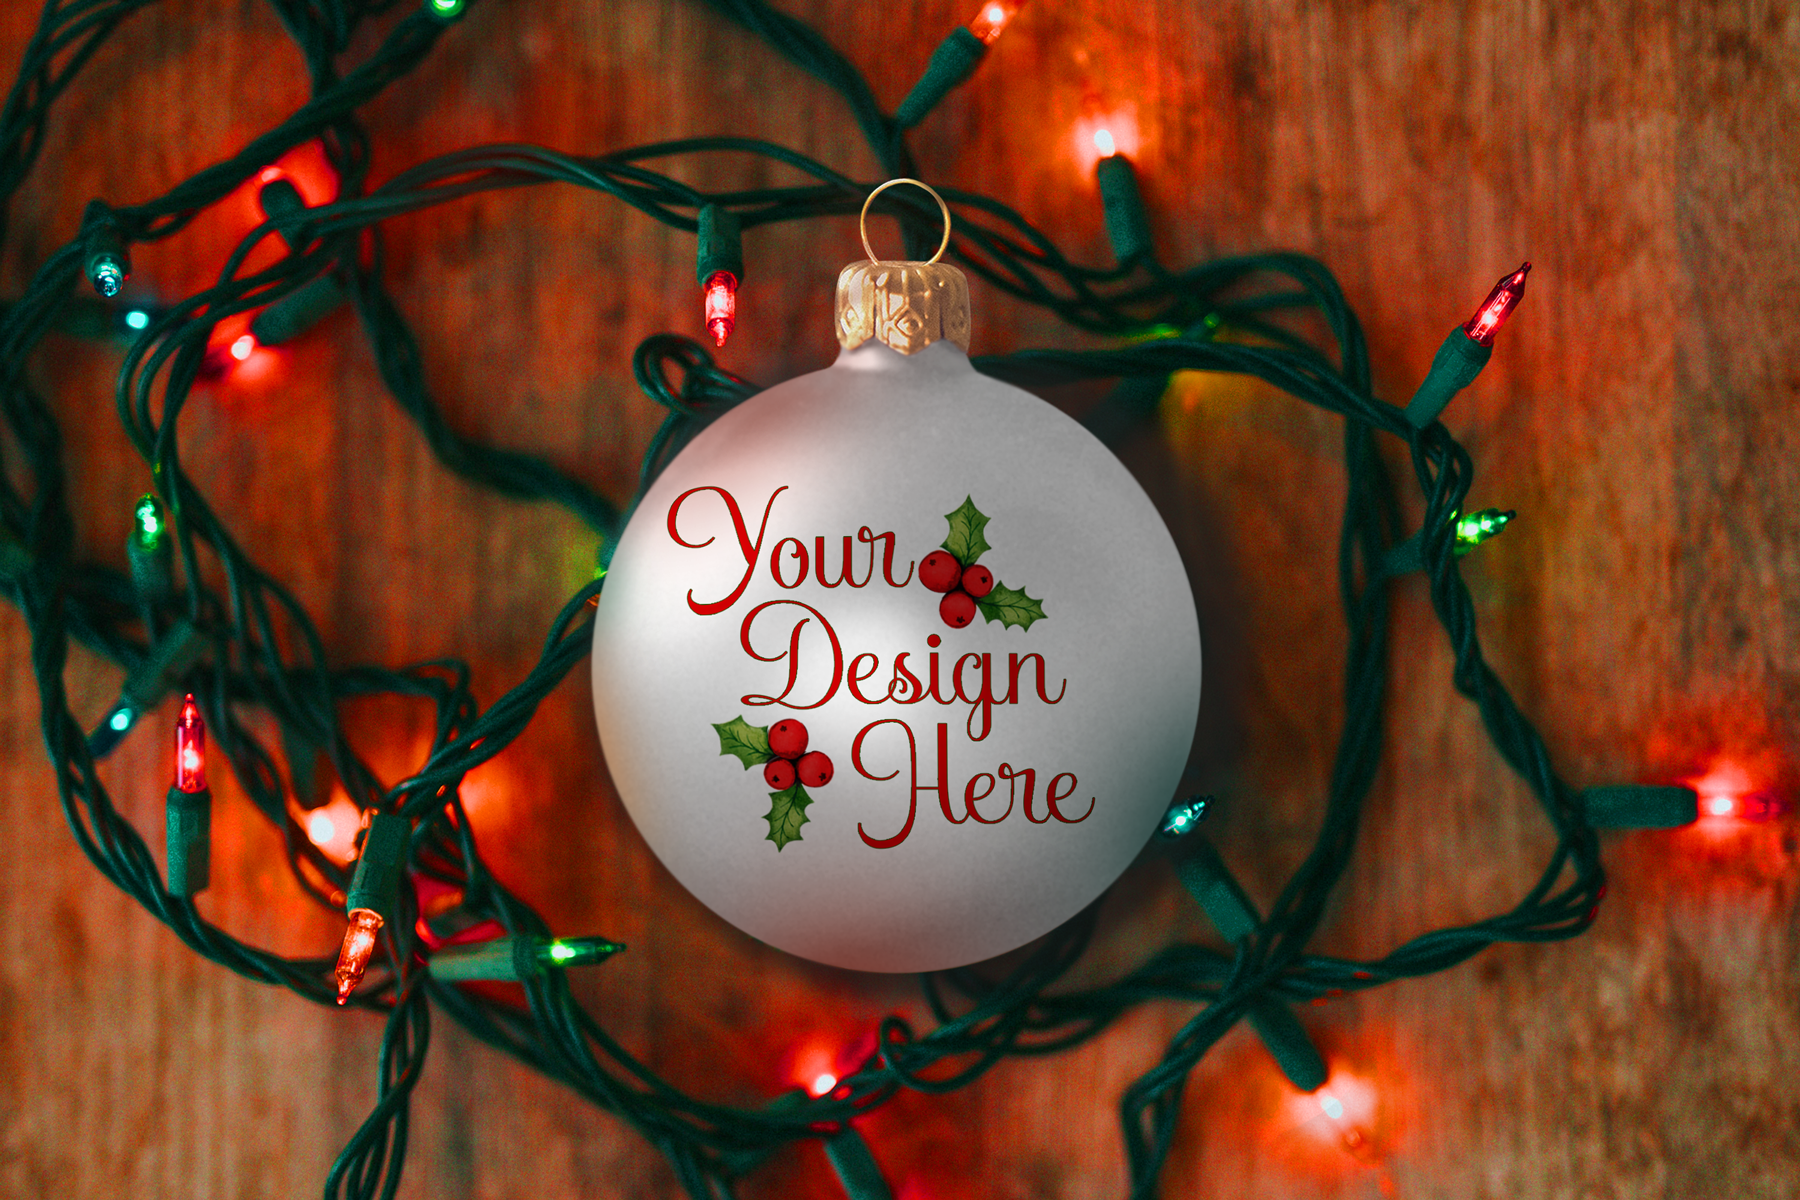 Christmas Ball Ornament Mockup, Bauble Mock-Up, PSD example image 2